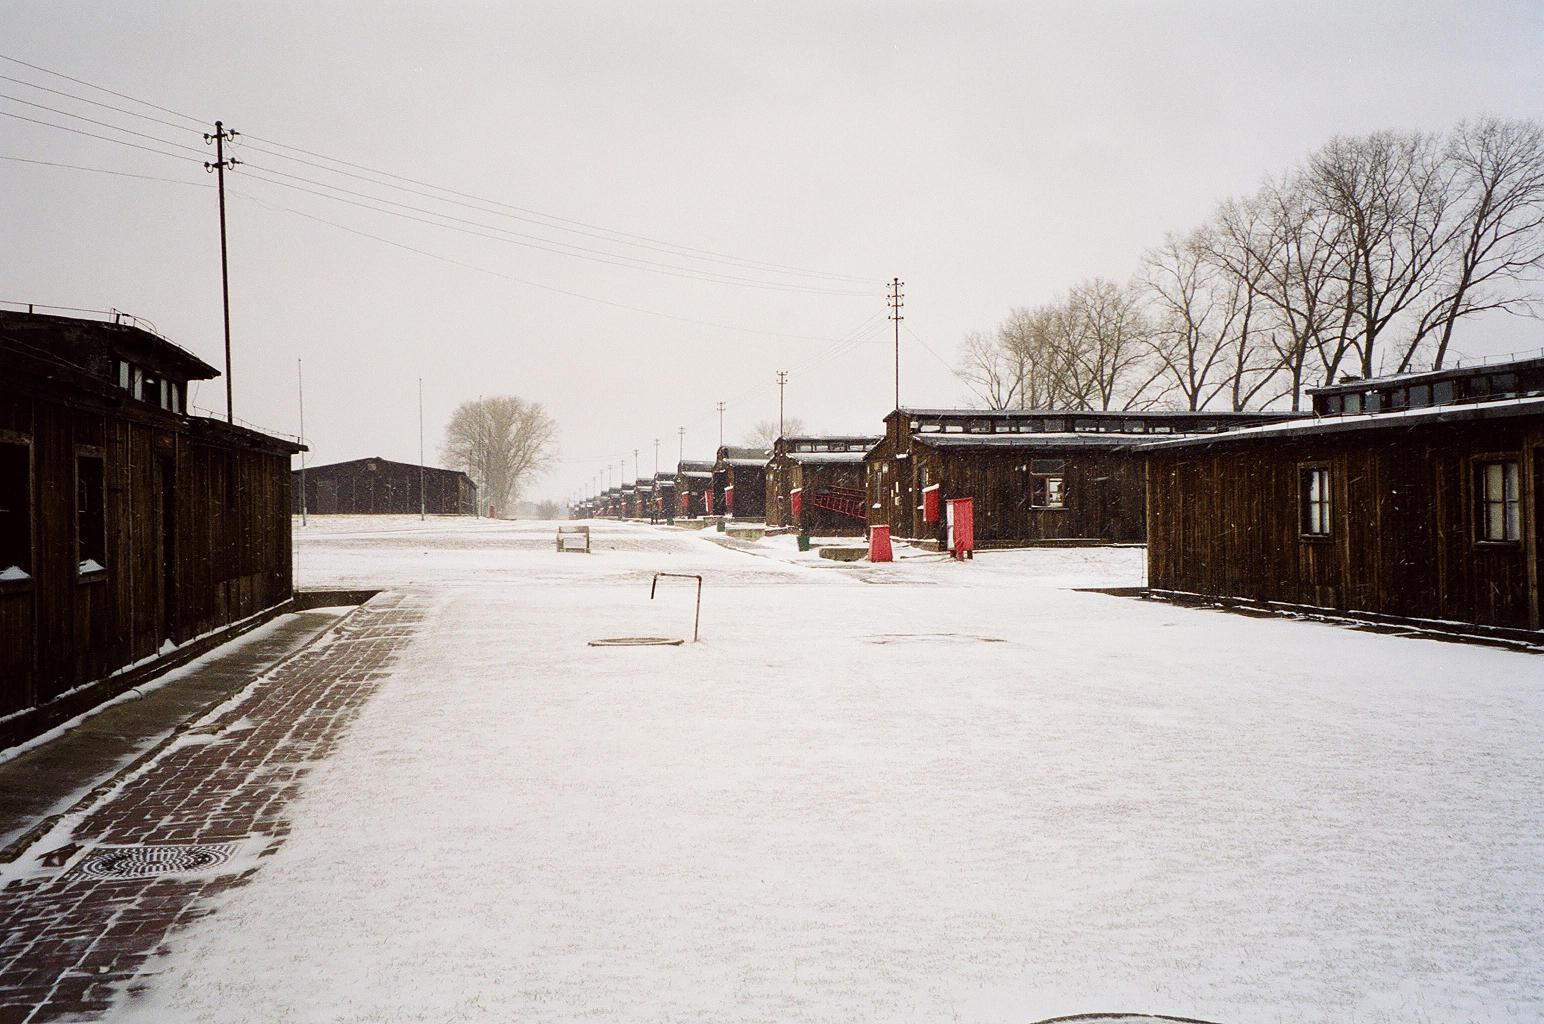 Barracks – Majdanek, Poland